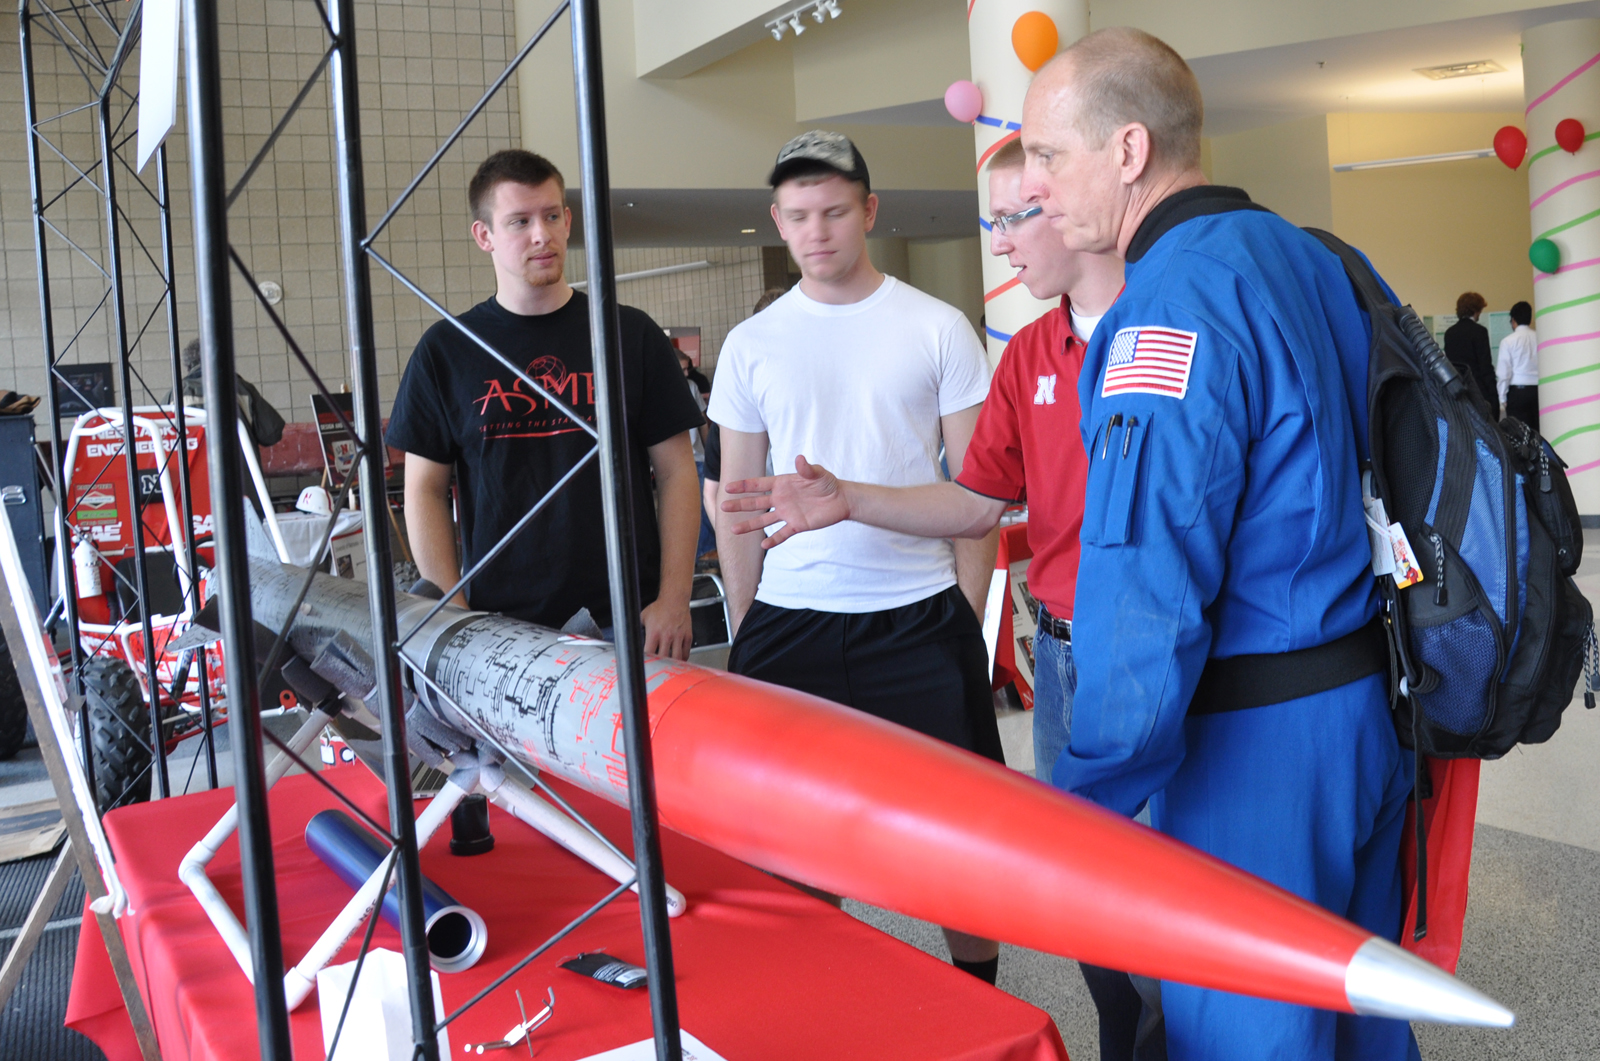 (From left) Mechanical engineering students Alex Drozda and Brad Christensen listen as civil engineering student Bryan Kubitschek, talks about a rocket with former NASA astronaut Clay Anderson on April 12 at Engineering Week Open House.